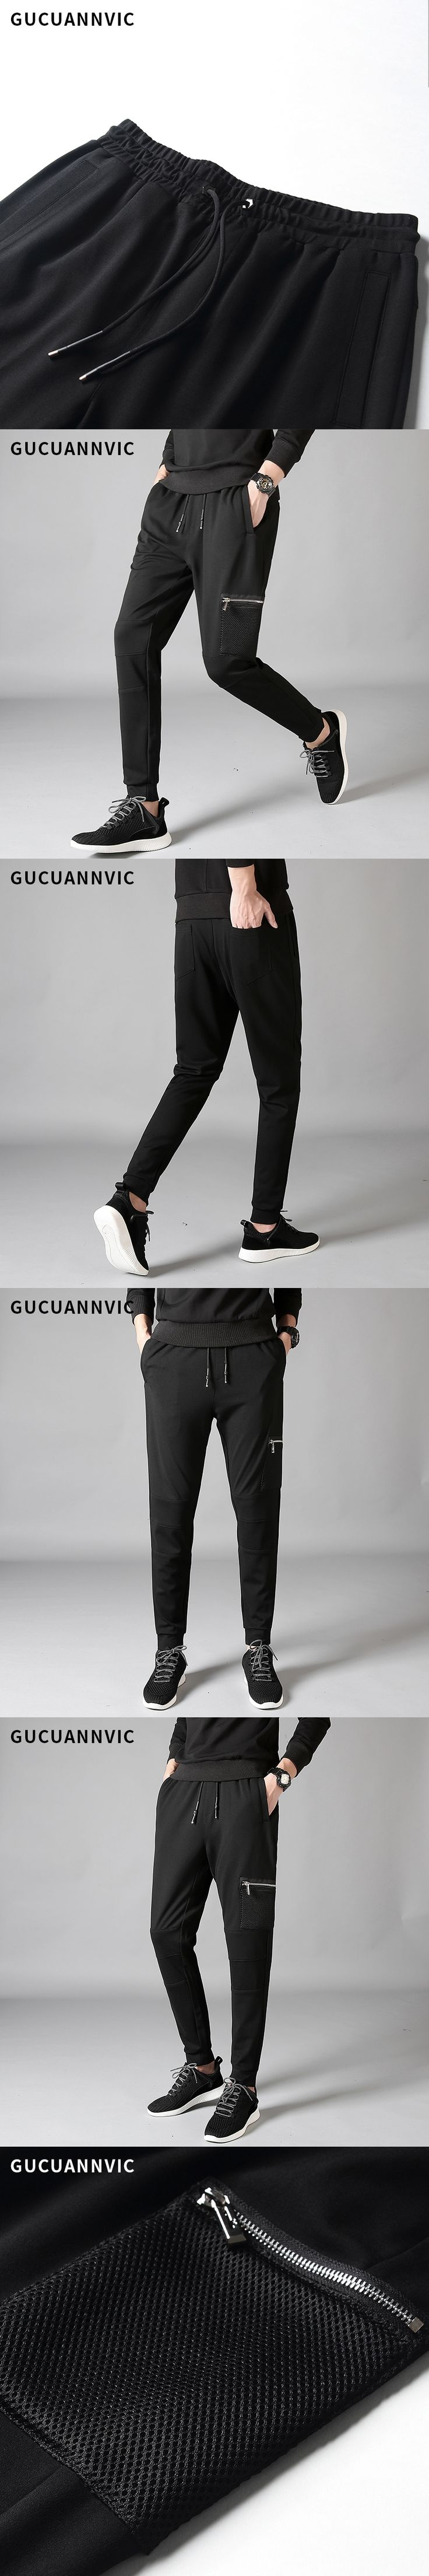 2017 elastic waist harem pants men fashion hip pop joggers trousers pocket zippers loose fitted all-match casual black pants